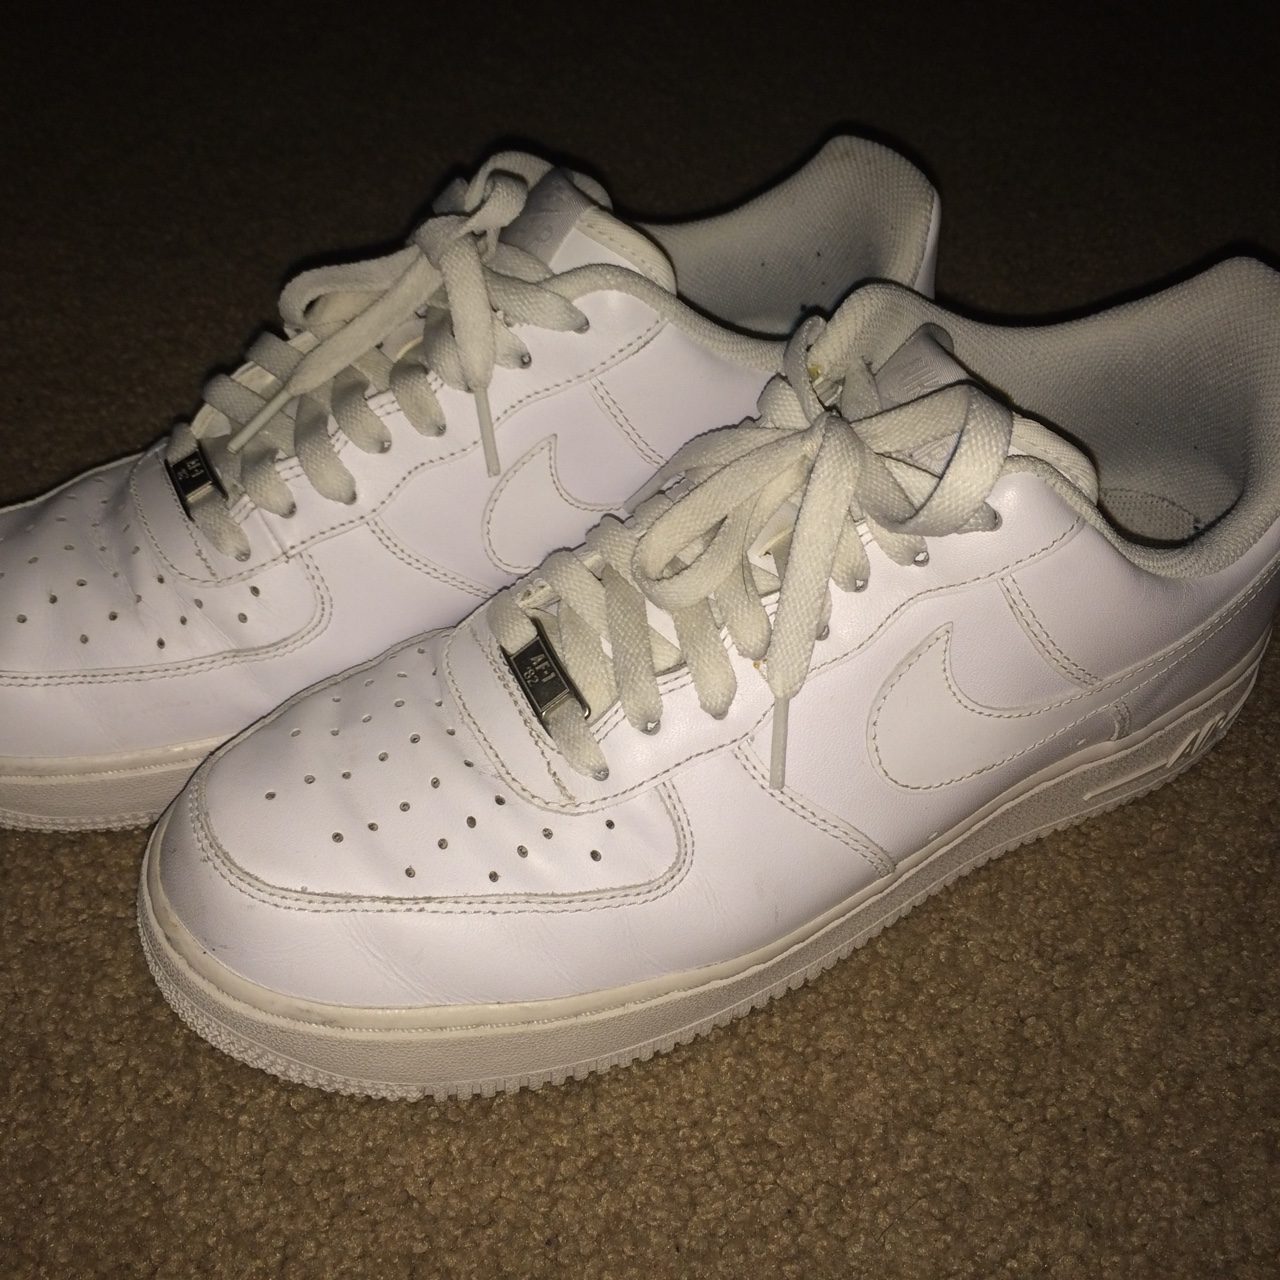 Nike Air Force 1 '07 QS Swoosh Pack(White) 100% Depop